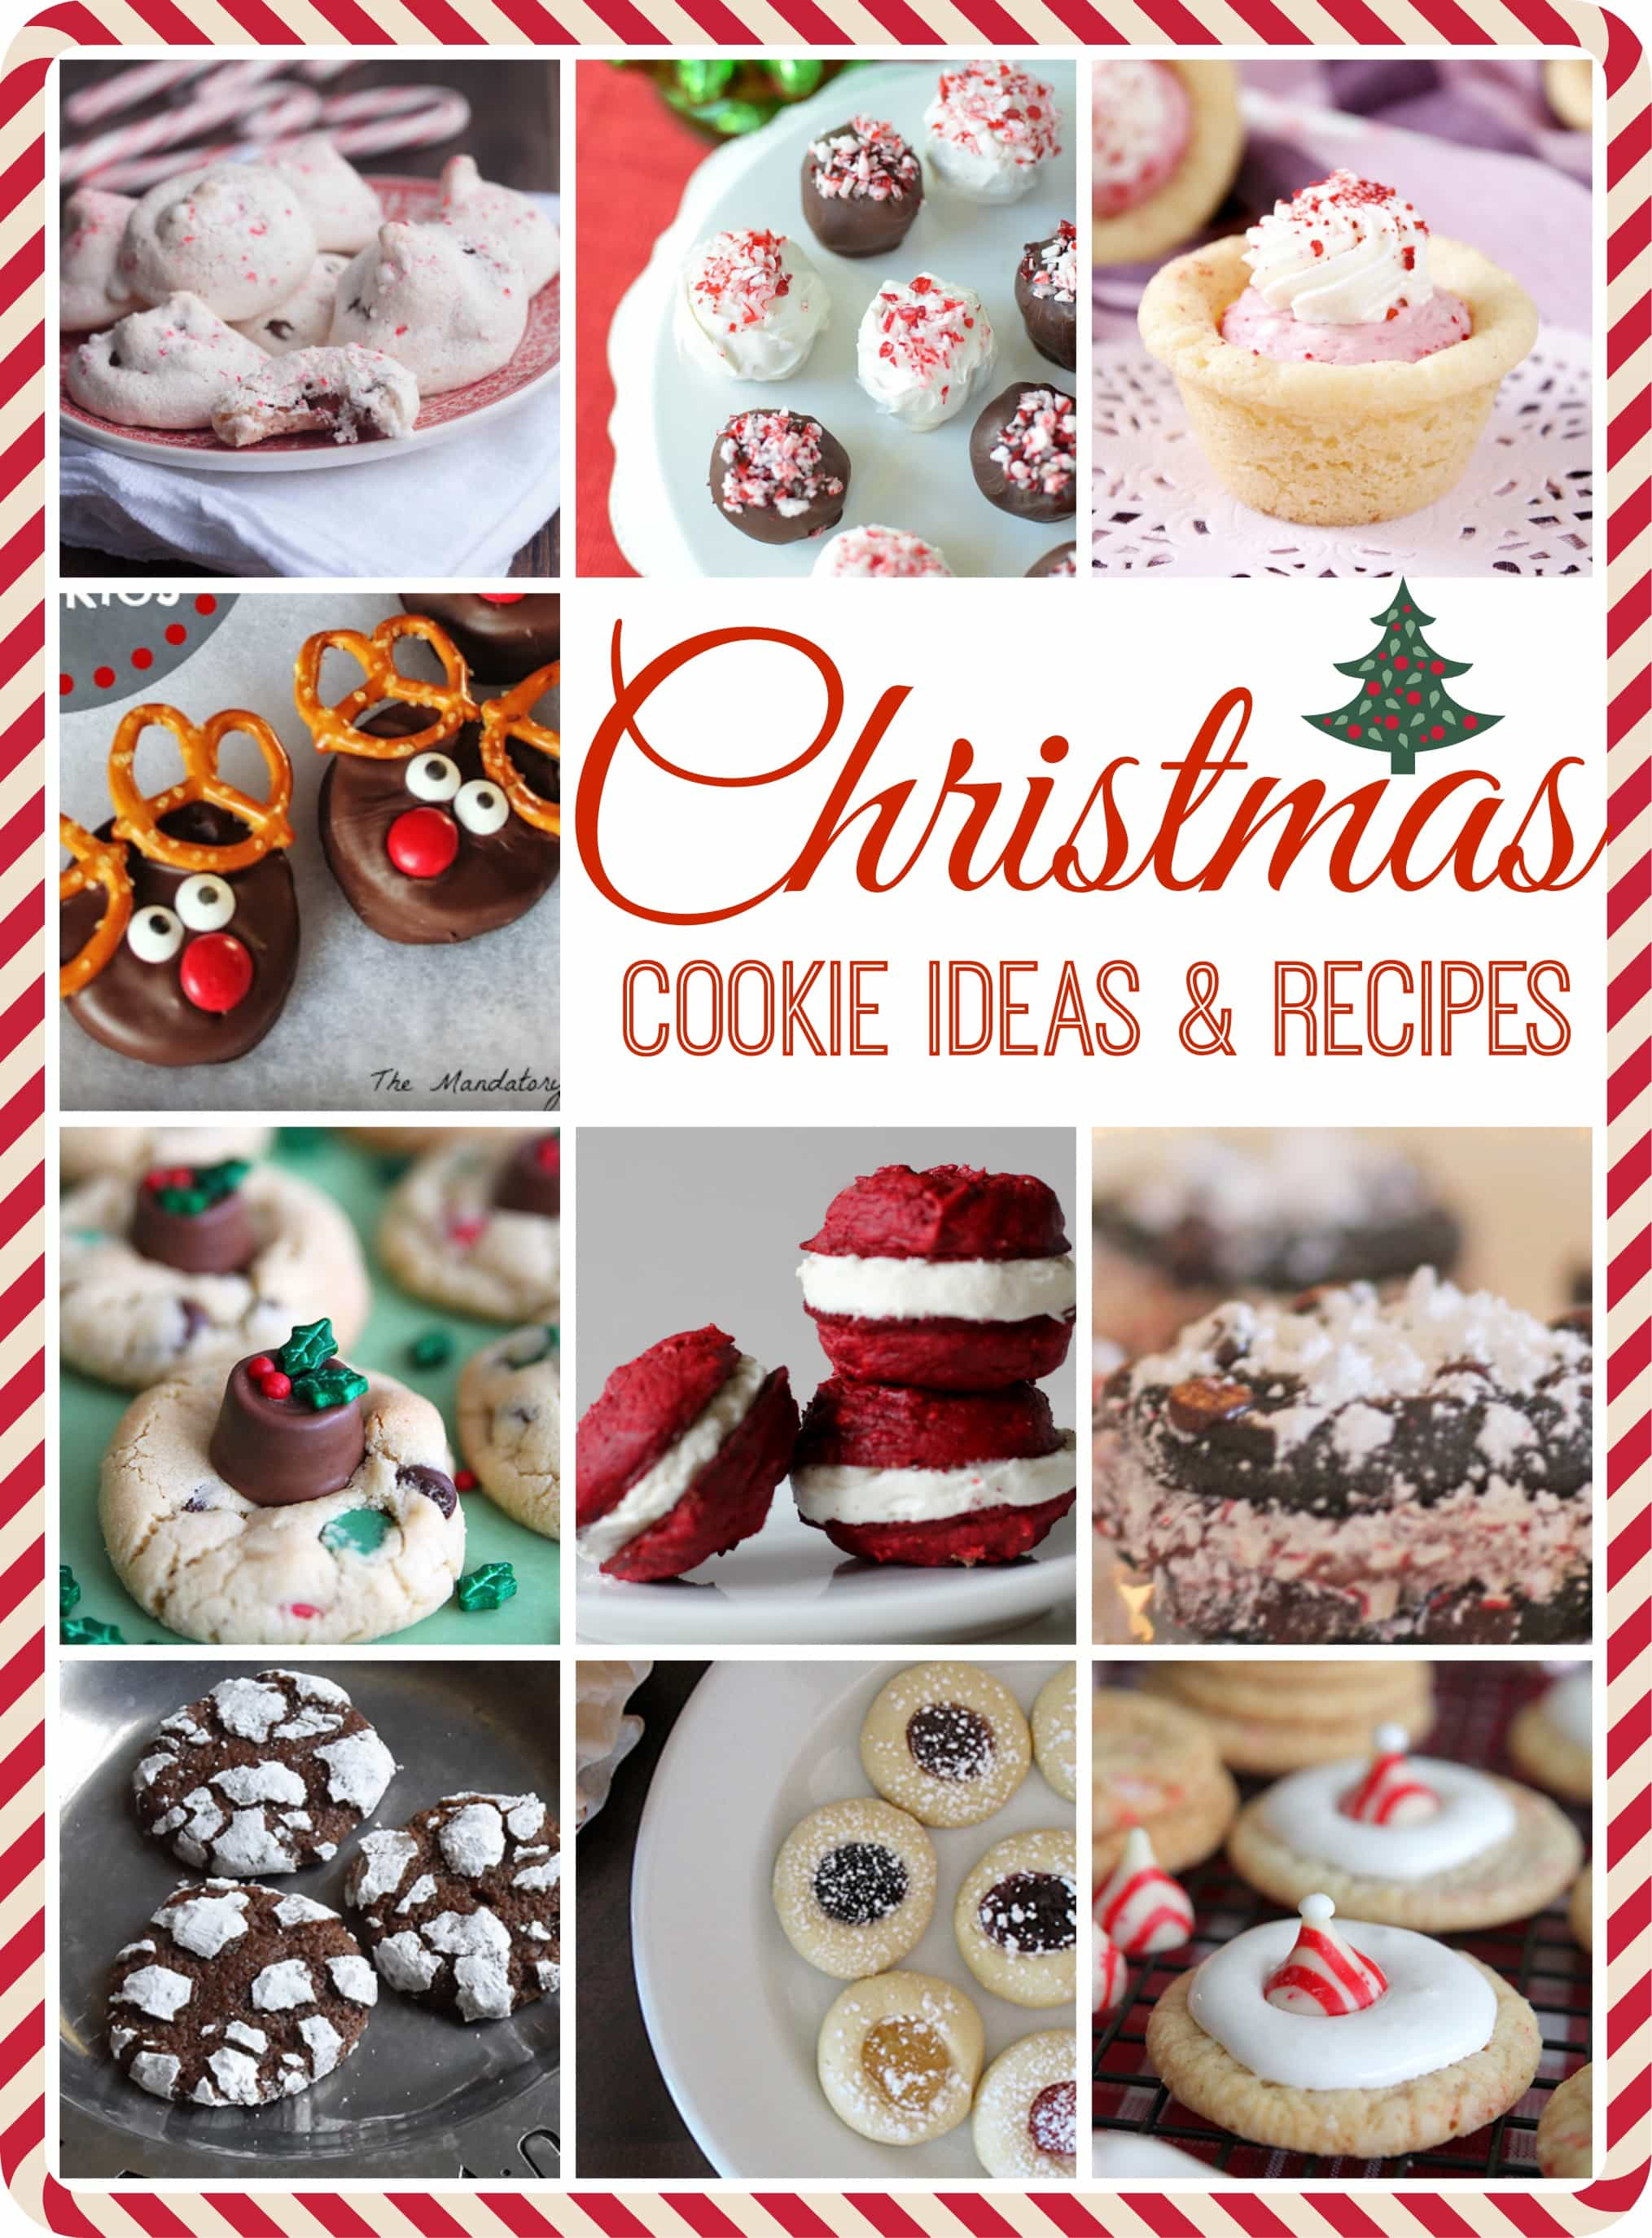 Christmas Cookie Ideas and Recipes for the holiday.  If you are looking for a delicious cookie recipe, you should find it in this roundup!